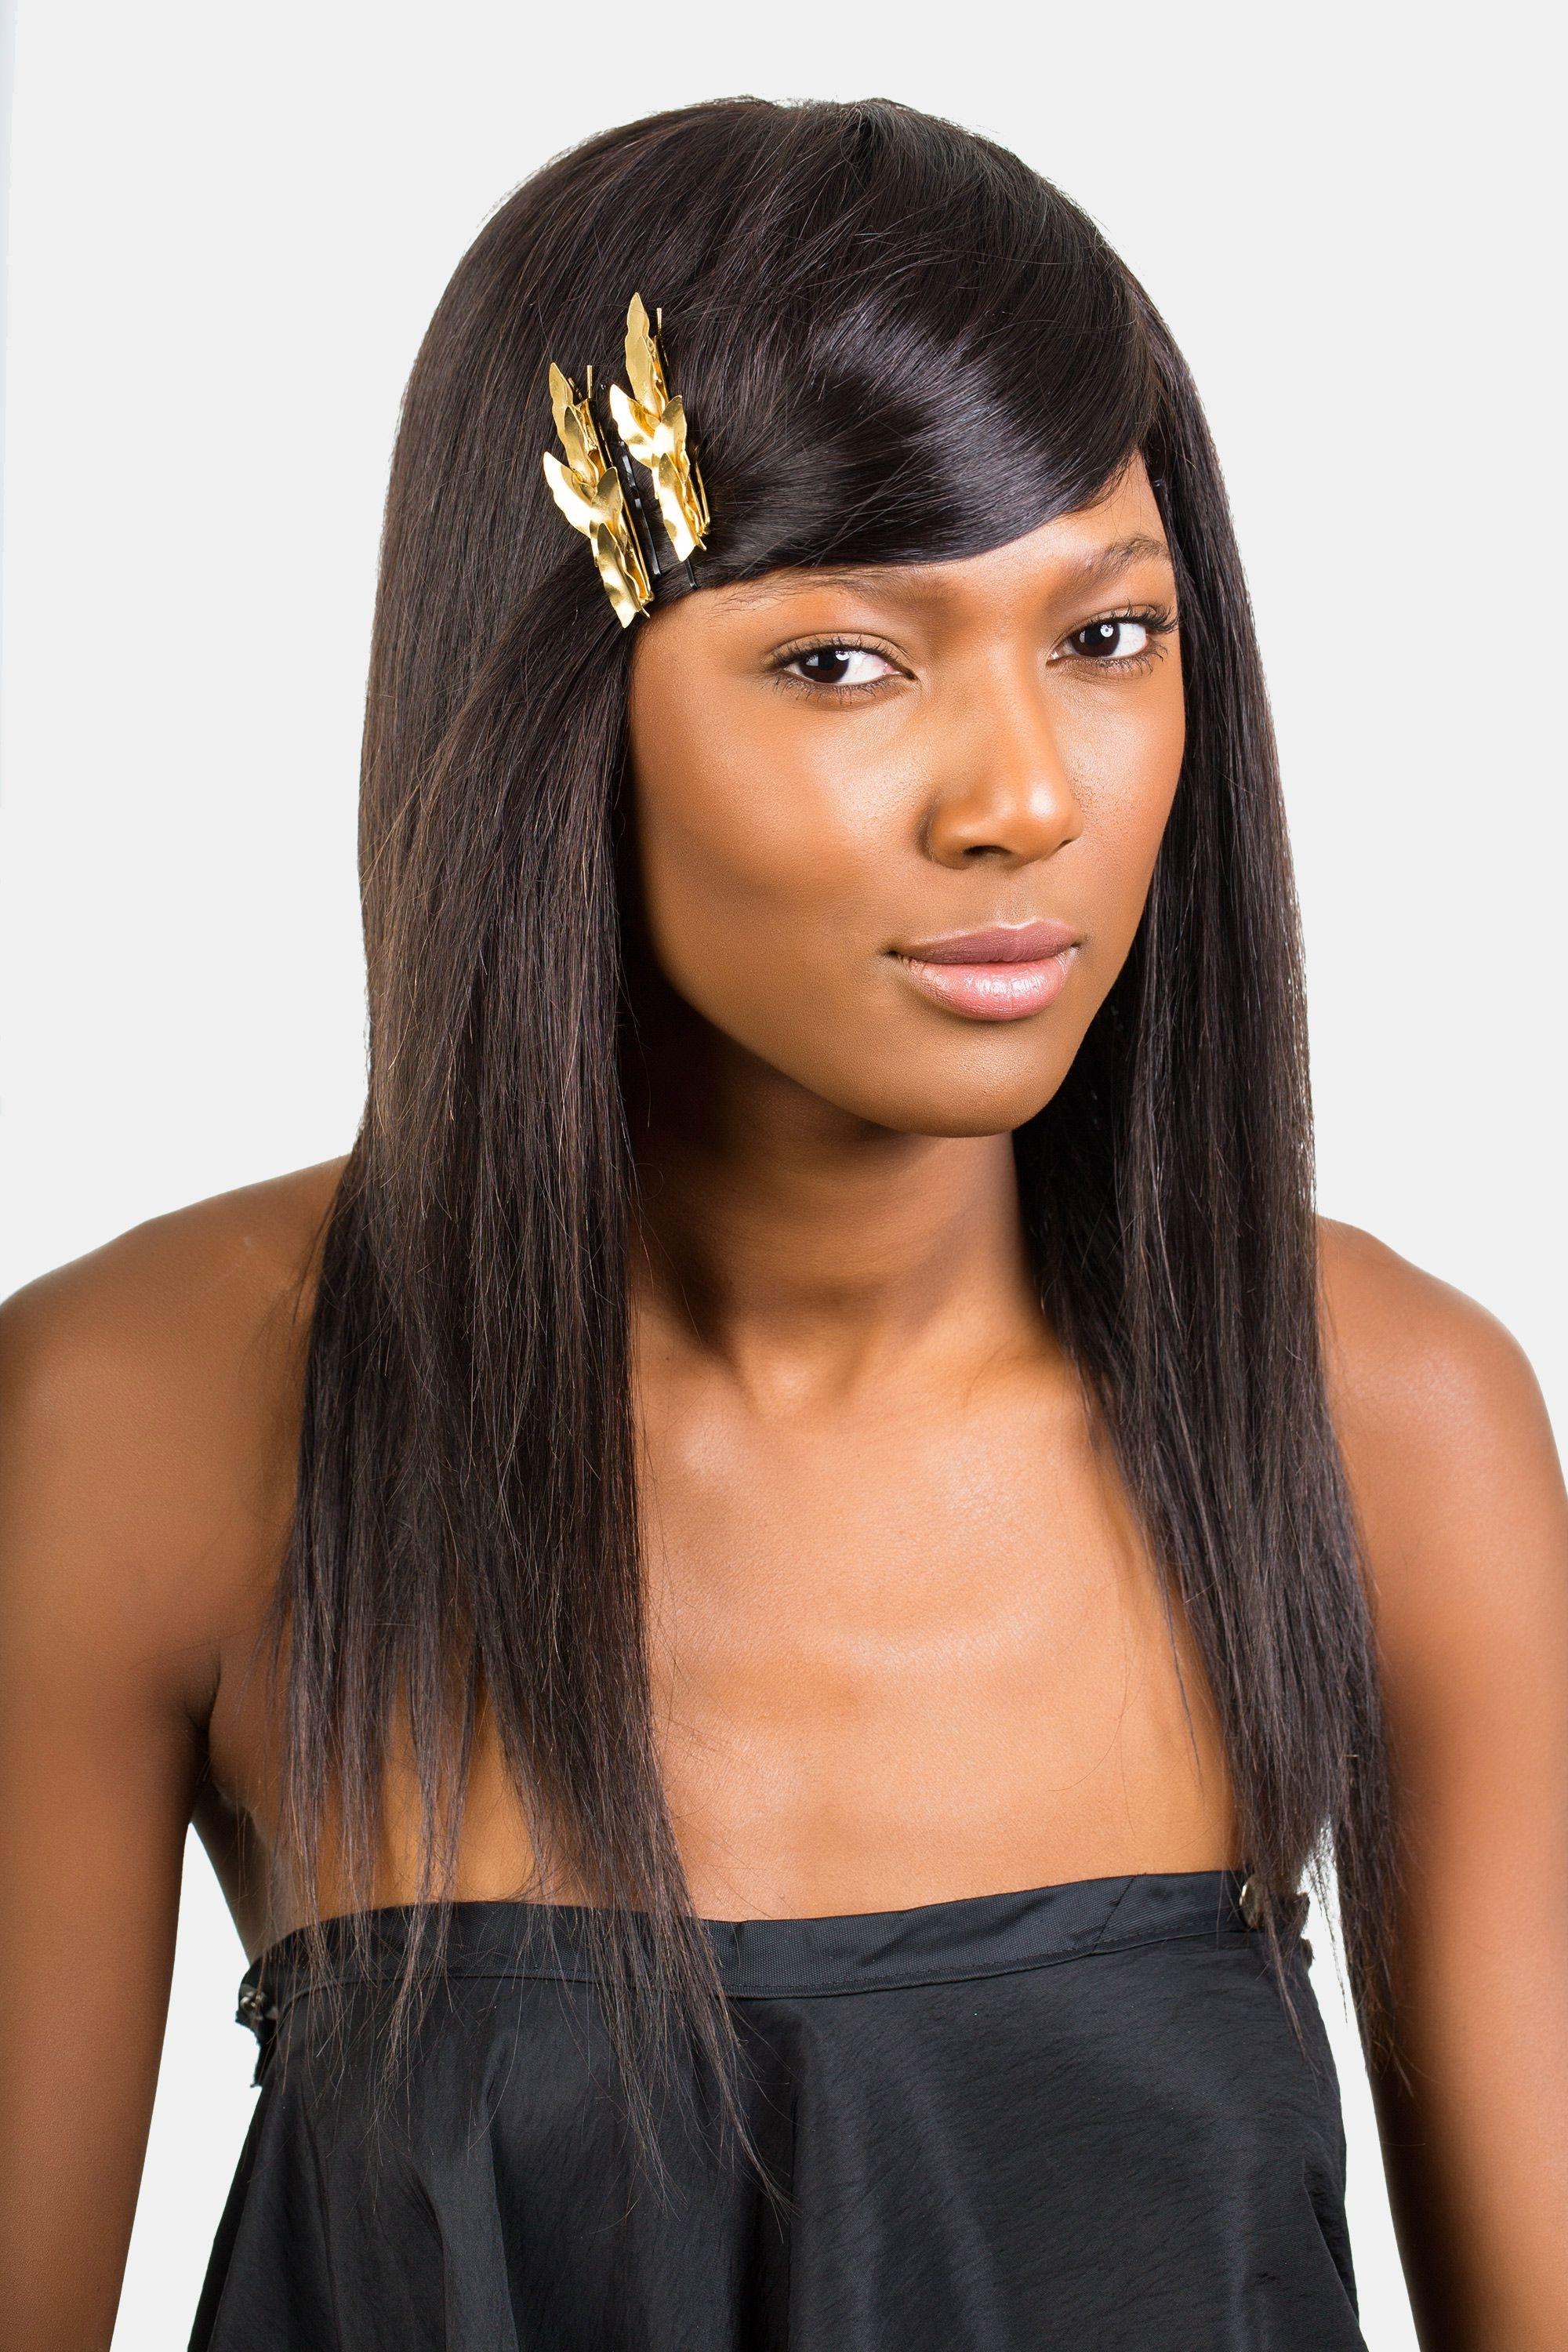 How To Style Bangs – 5 Hairstyles To Keep Your Bangs Out Of Your Face With Most Current Low Black Ponytail Hairstyles With Bangs (View 20 of 20)